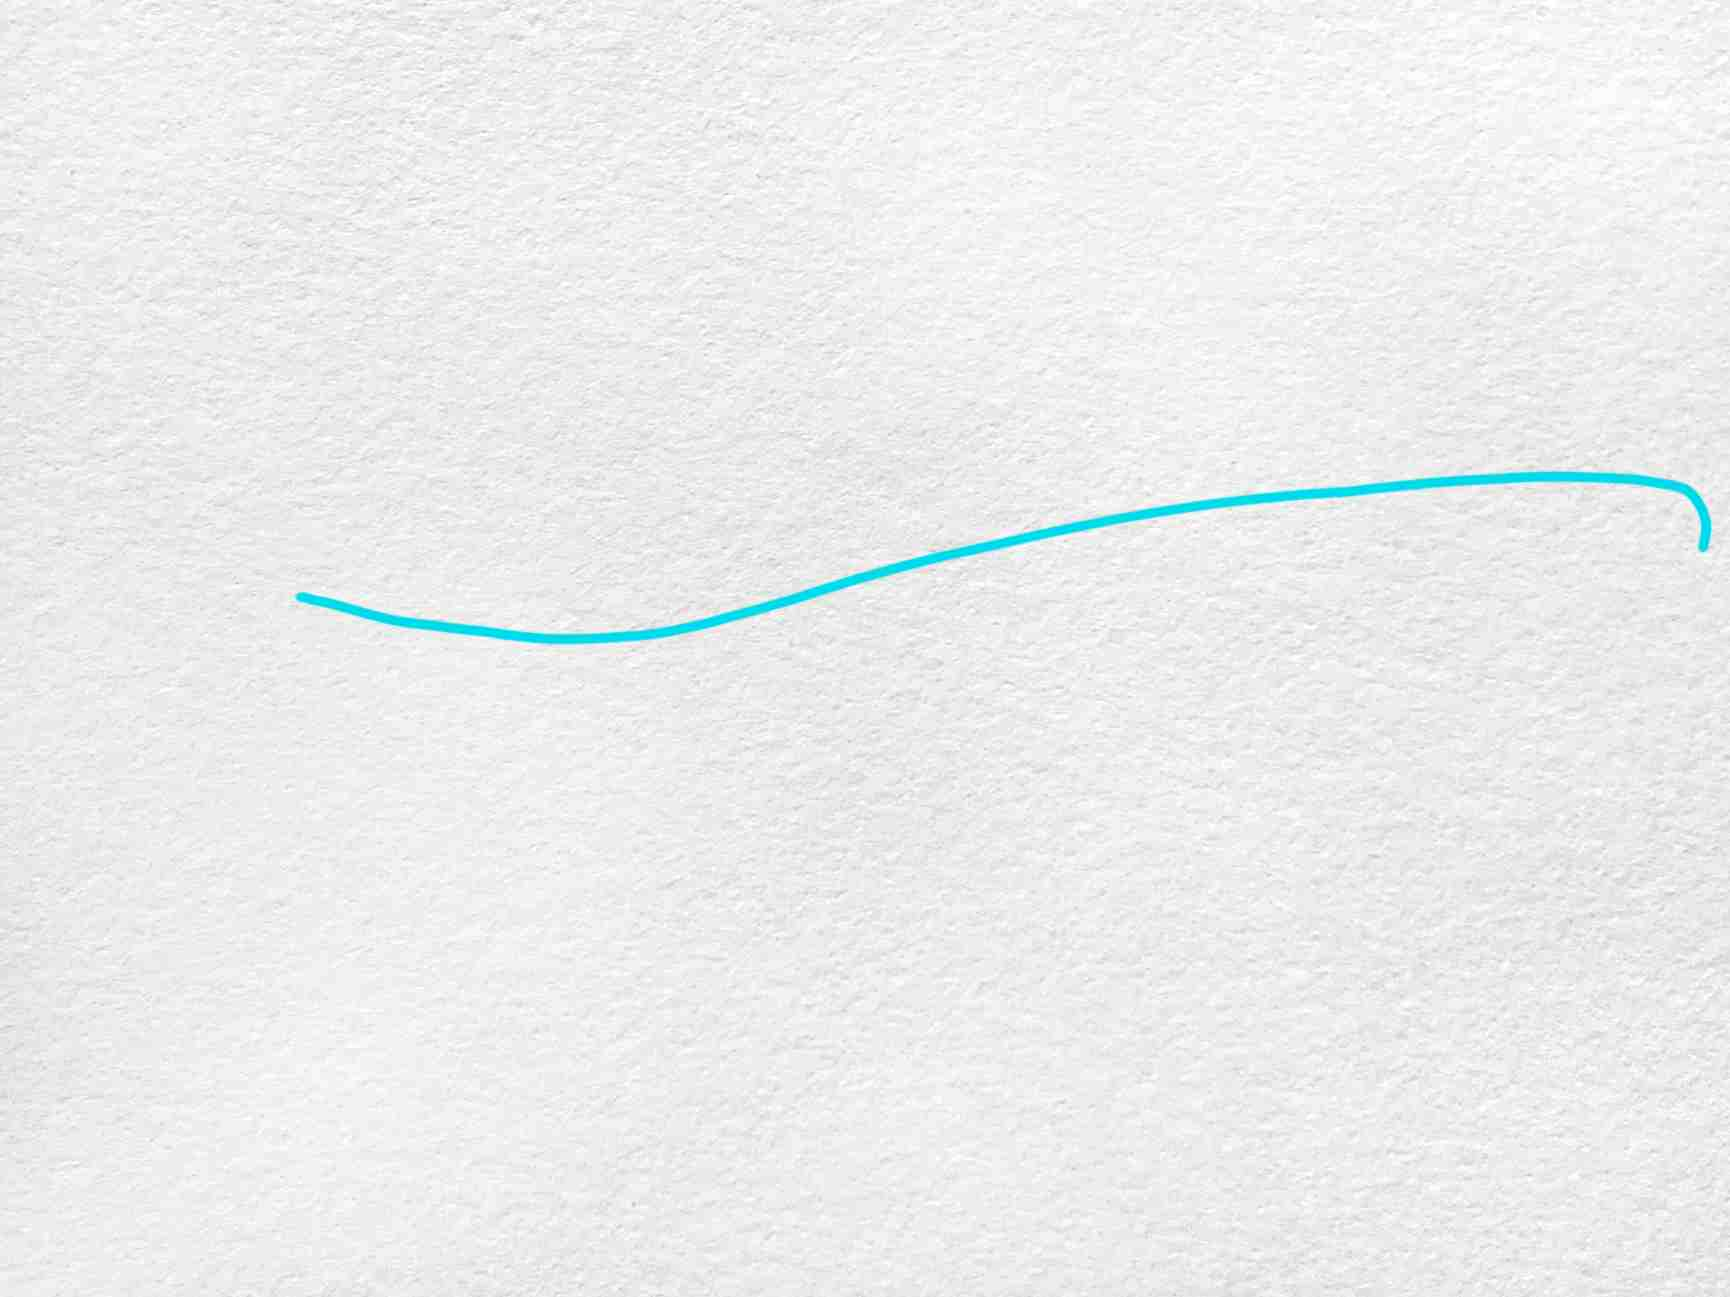 Blue Whale Drawing: Step 1